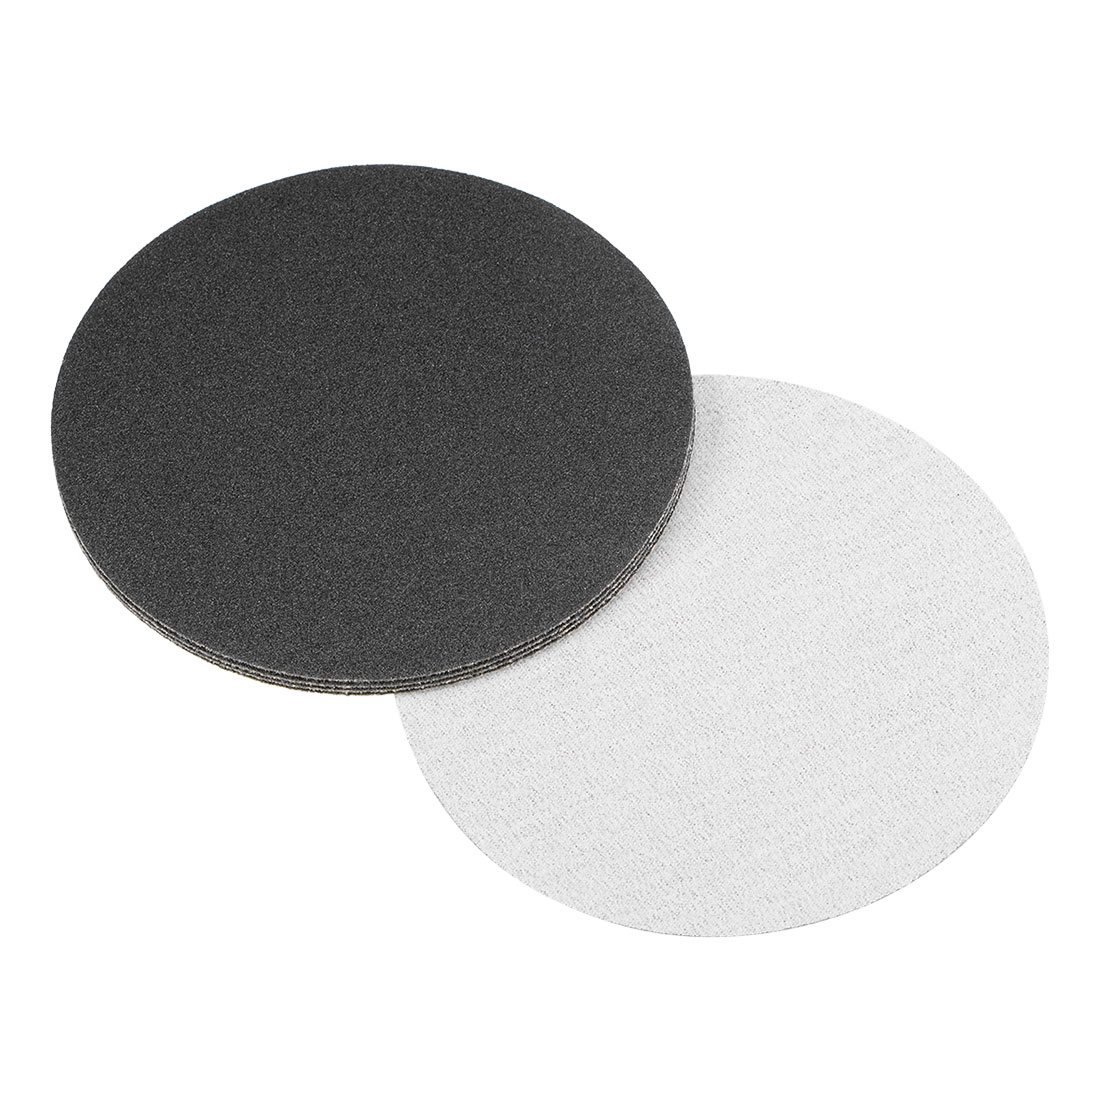 5 inch Wet Dry Discs 100 Grit Hook and Loop Sanding Disc Silicon Carbide 5pcs